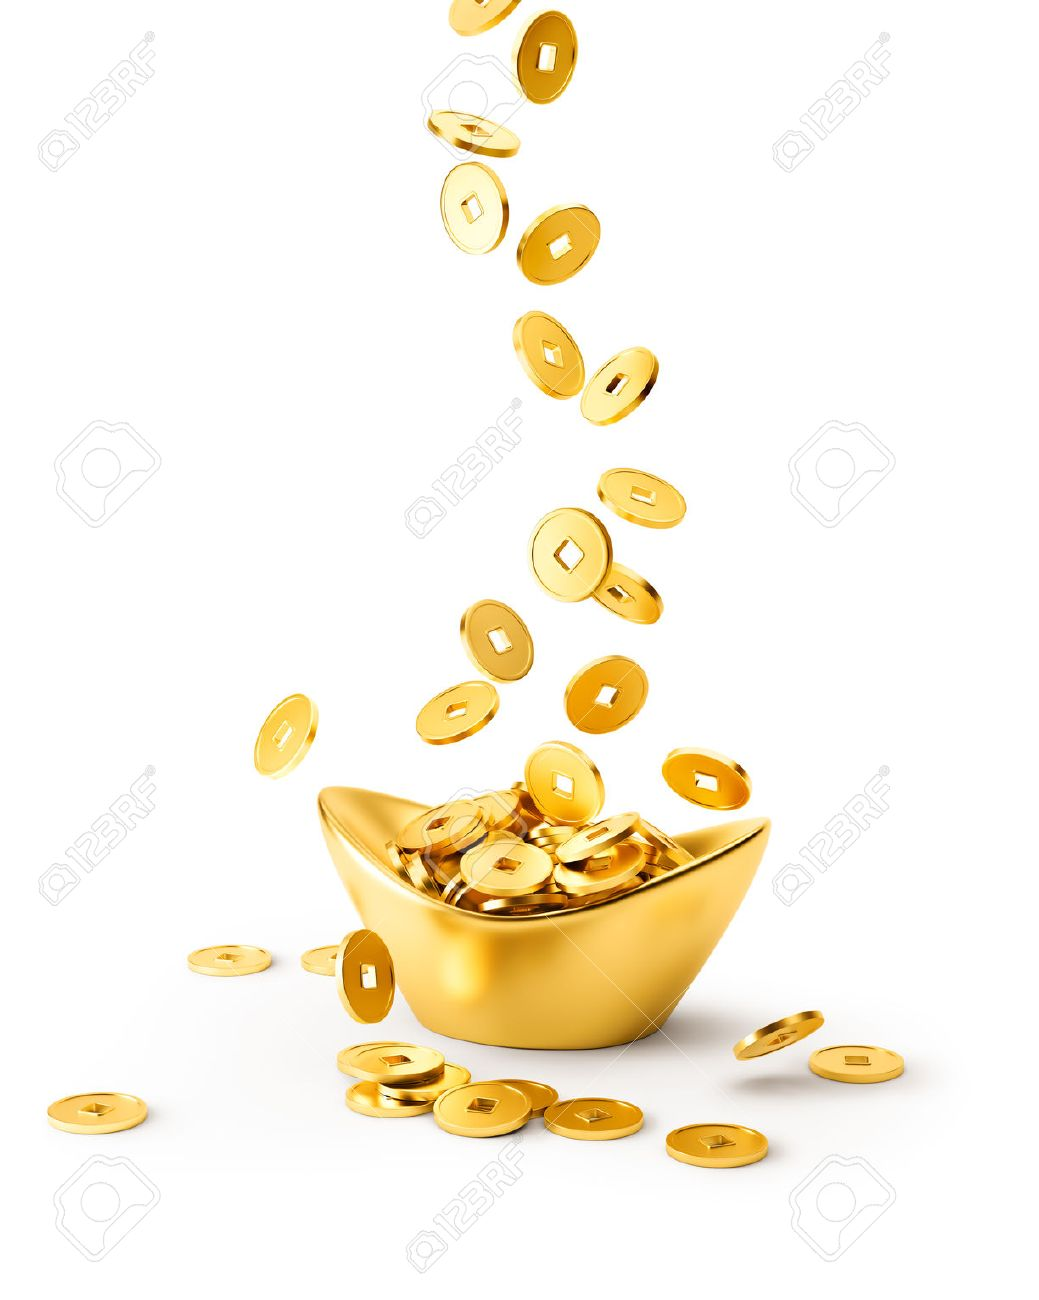 Gold coins dropping on gold sycee ( yuanbao ) isolated on white background - 50224034